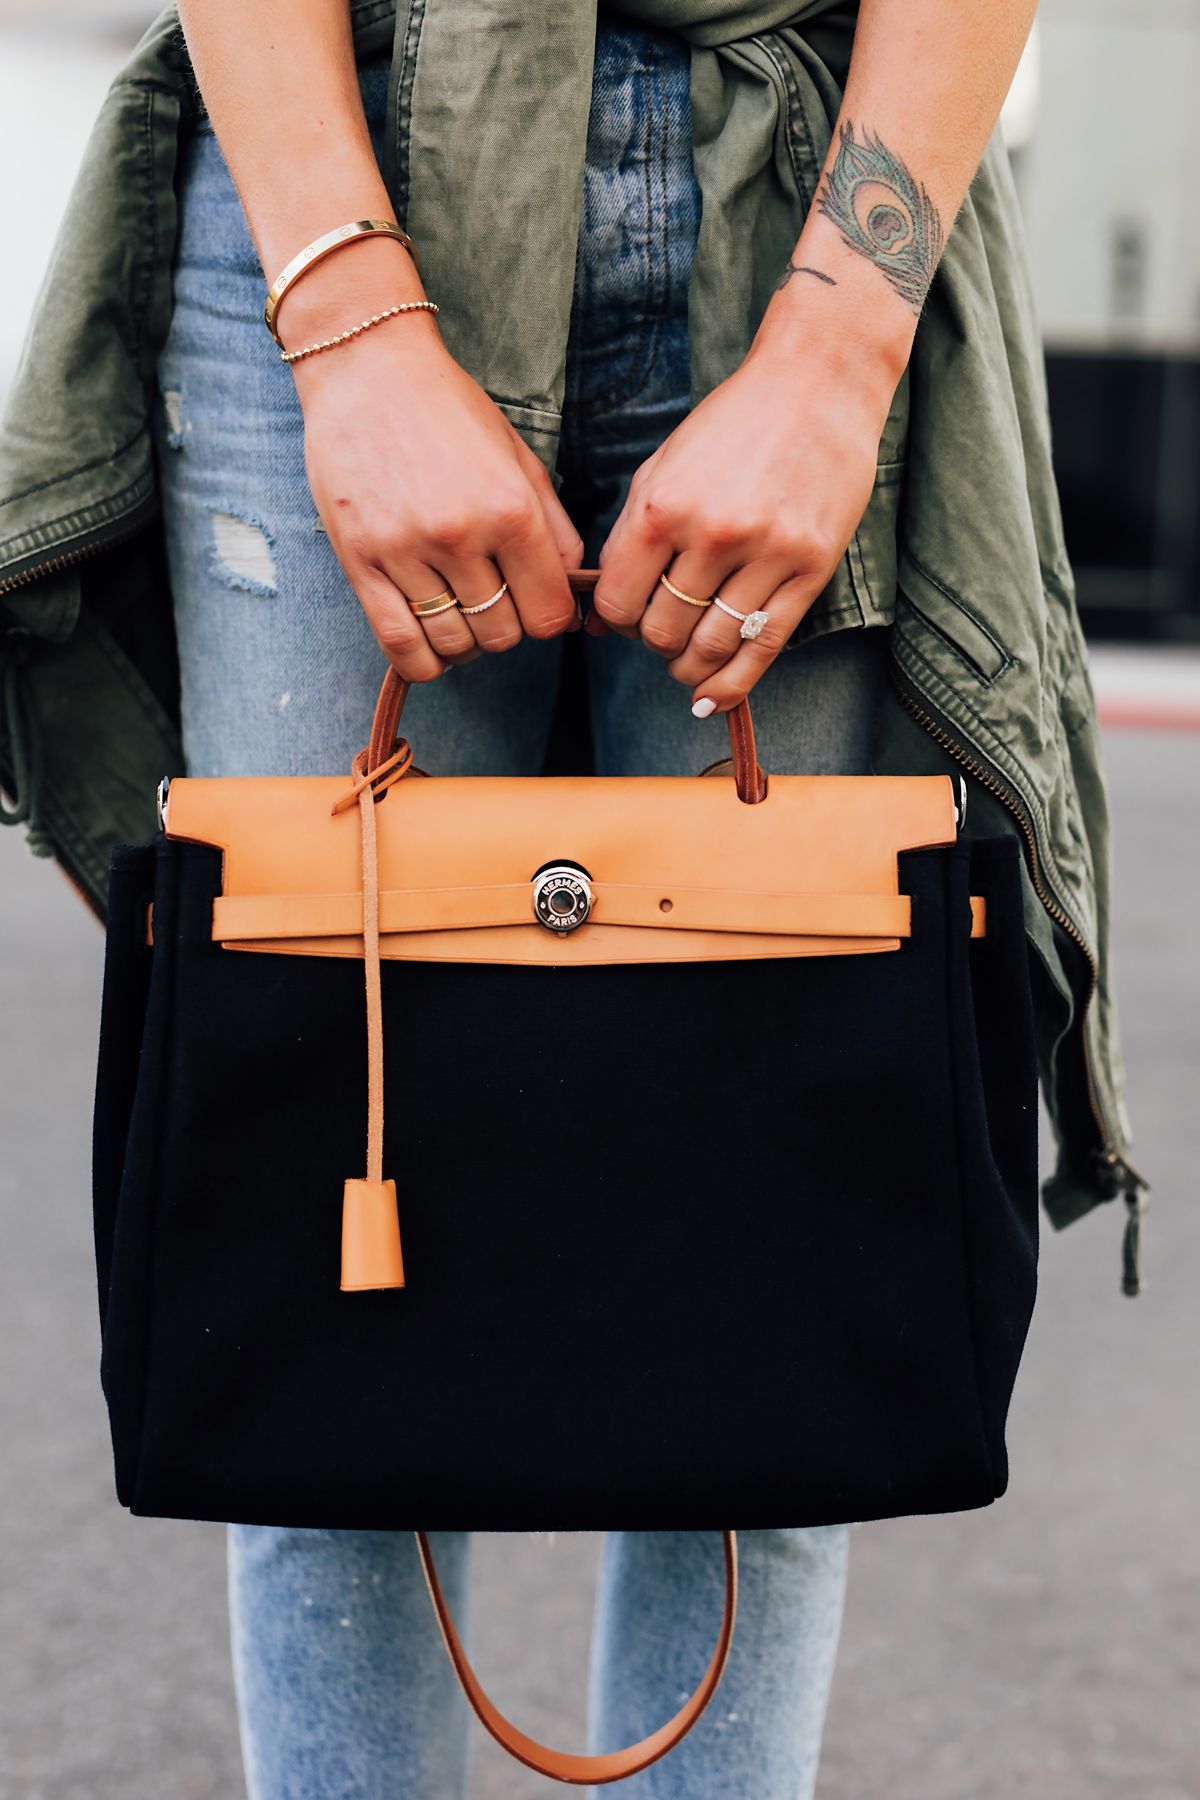 Woman Wearing eBay Authenticate Handbags Vintage Hermes Herbag Black Tan Handbag Fashion Jackson San Diego Fashion Blogger Street Style